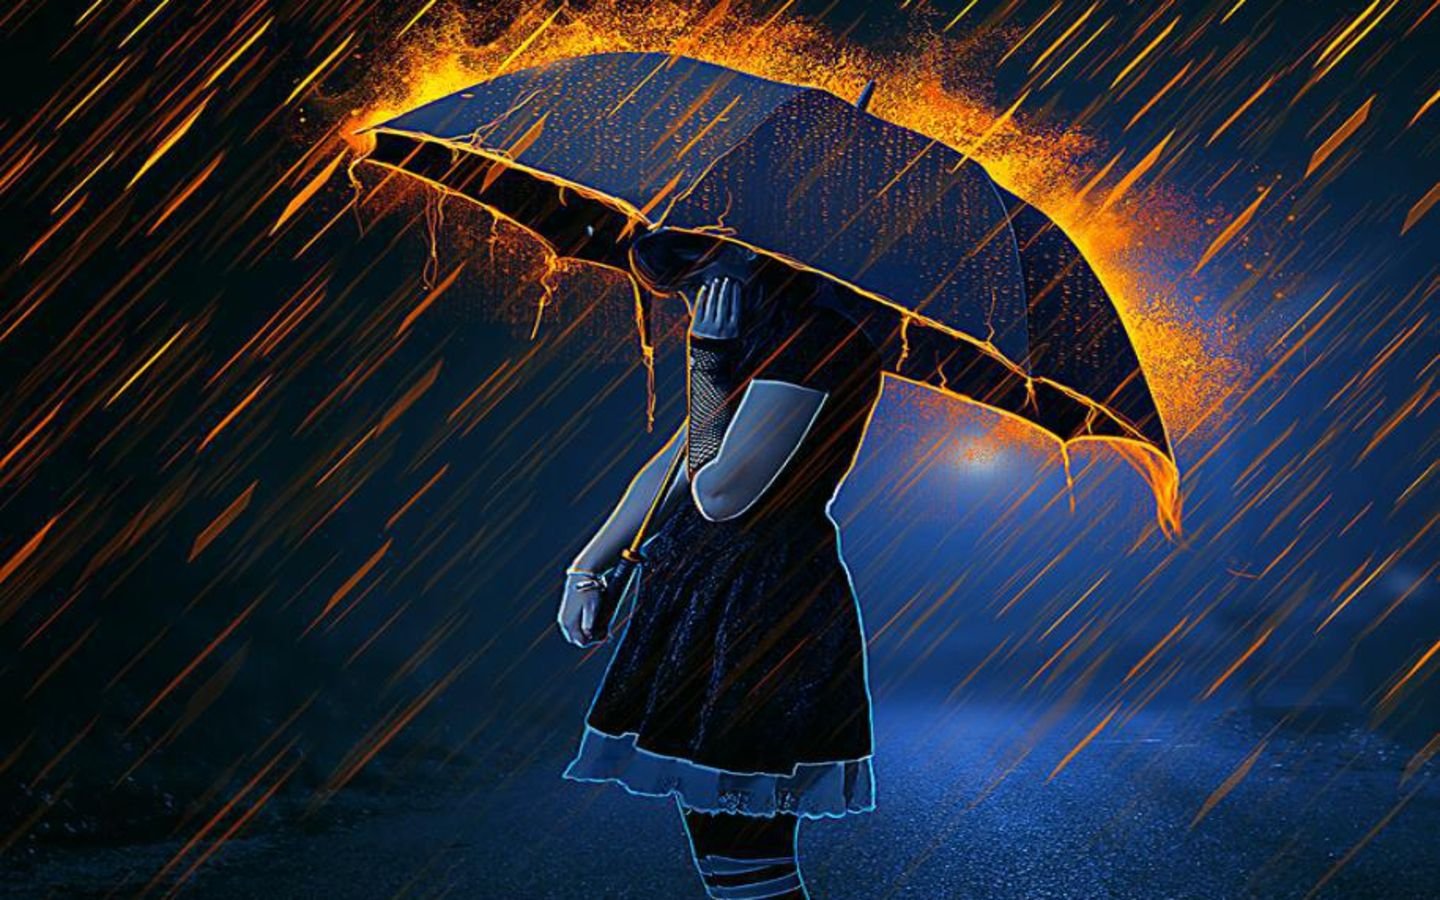 Anime women women girl umbrella fire rain - Anime rain wallpaper ...